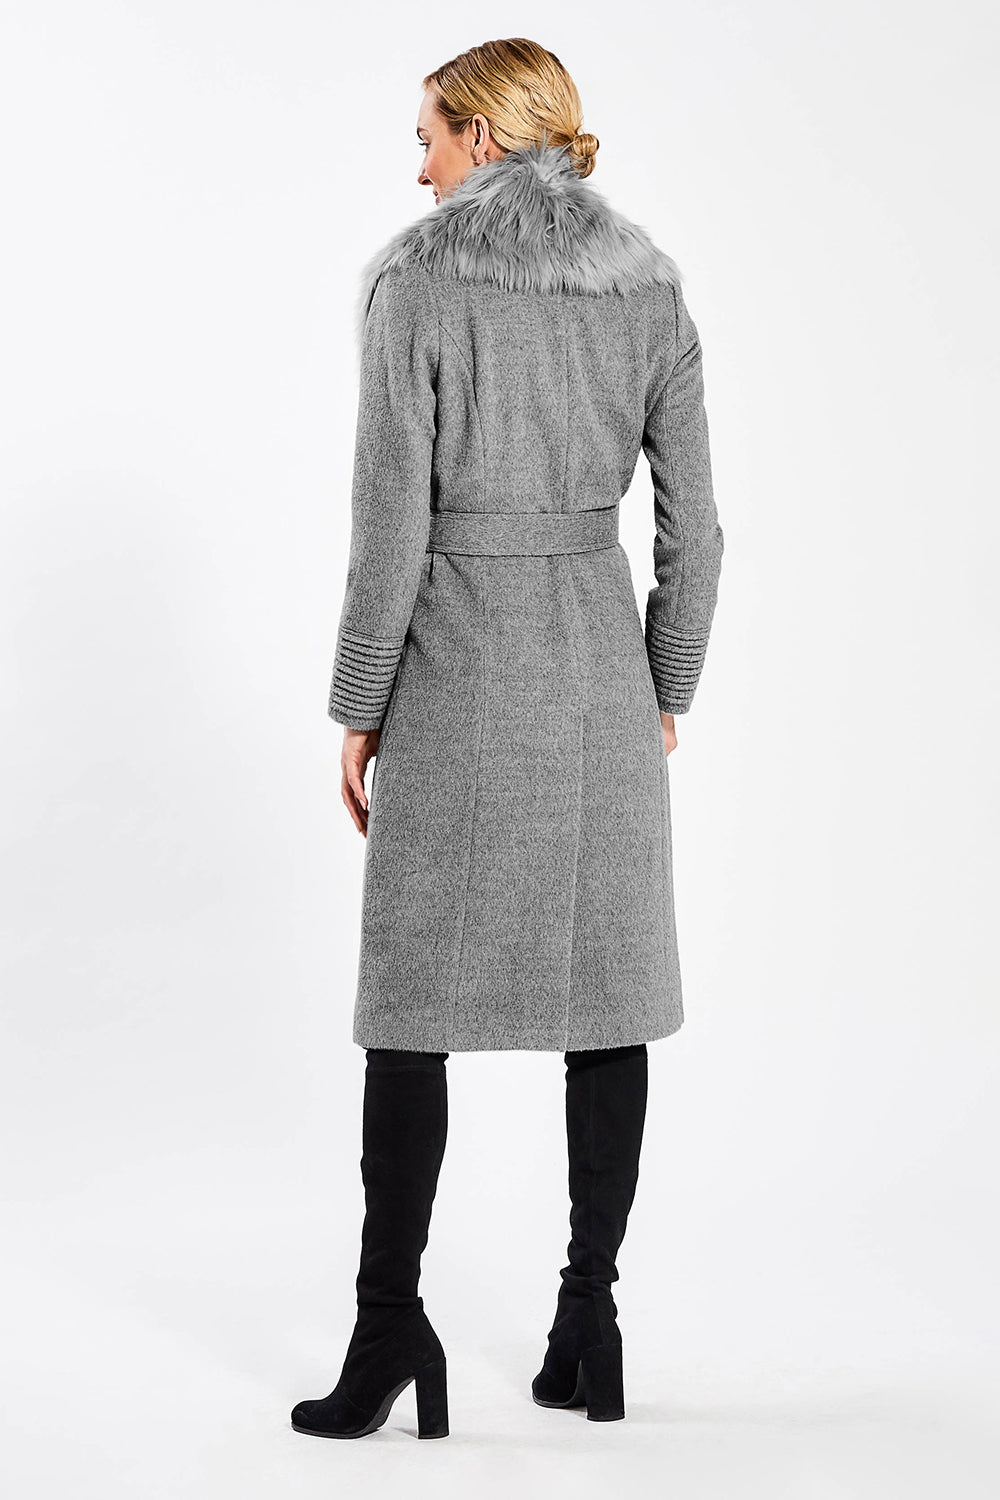 Sentaler Long Coat with Fur Collar featured in Baby Alpaca and available in Shale Grey. Seen from back.